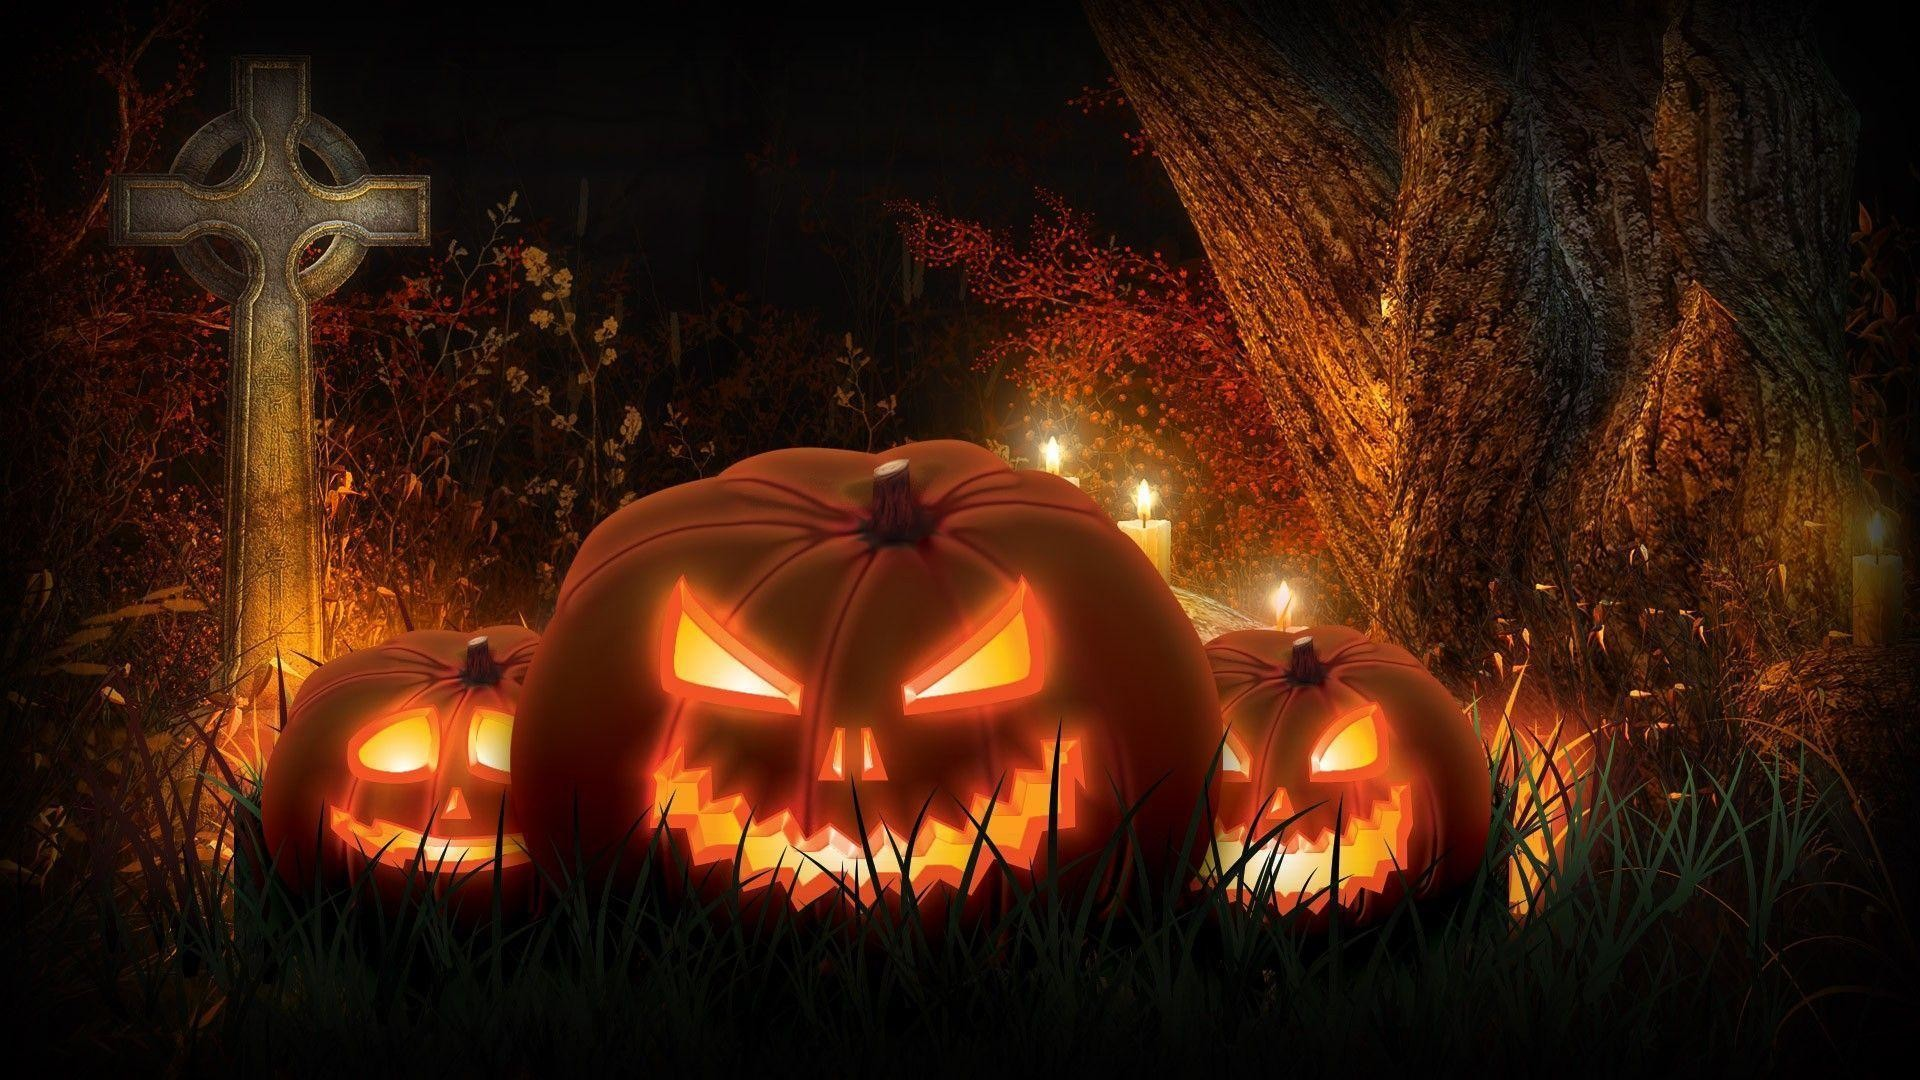 1920x1080 Scary Halloween Pumpkin Wallpaper 1080p   ToObjects.